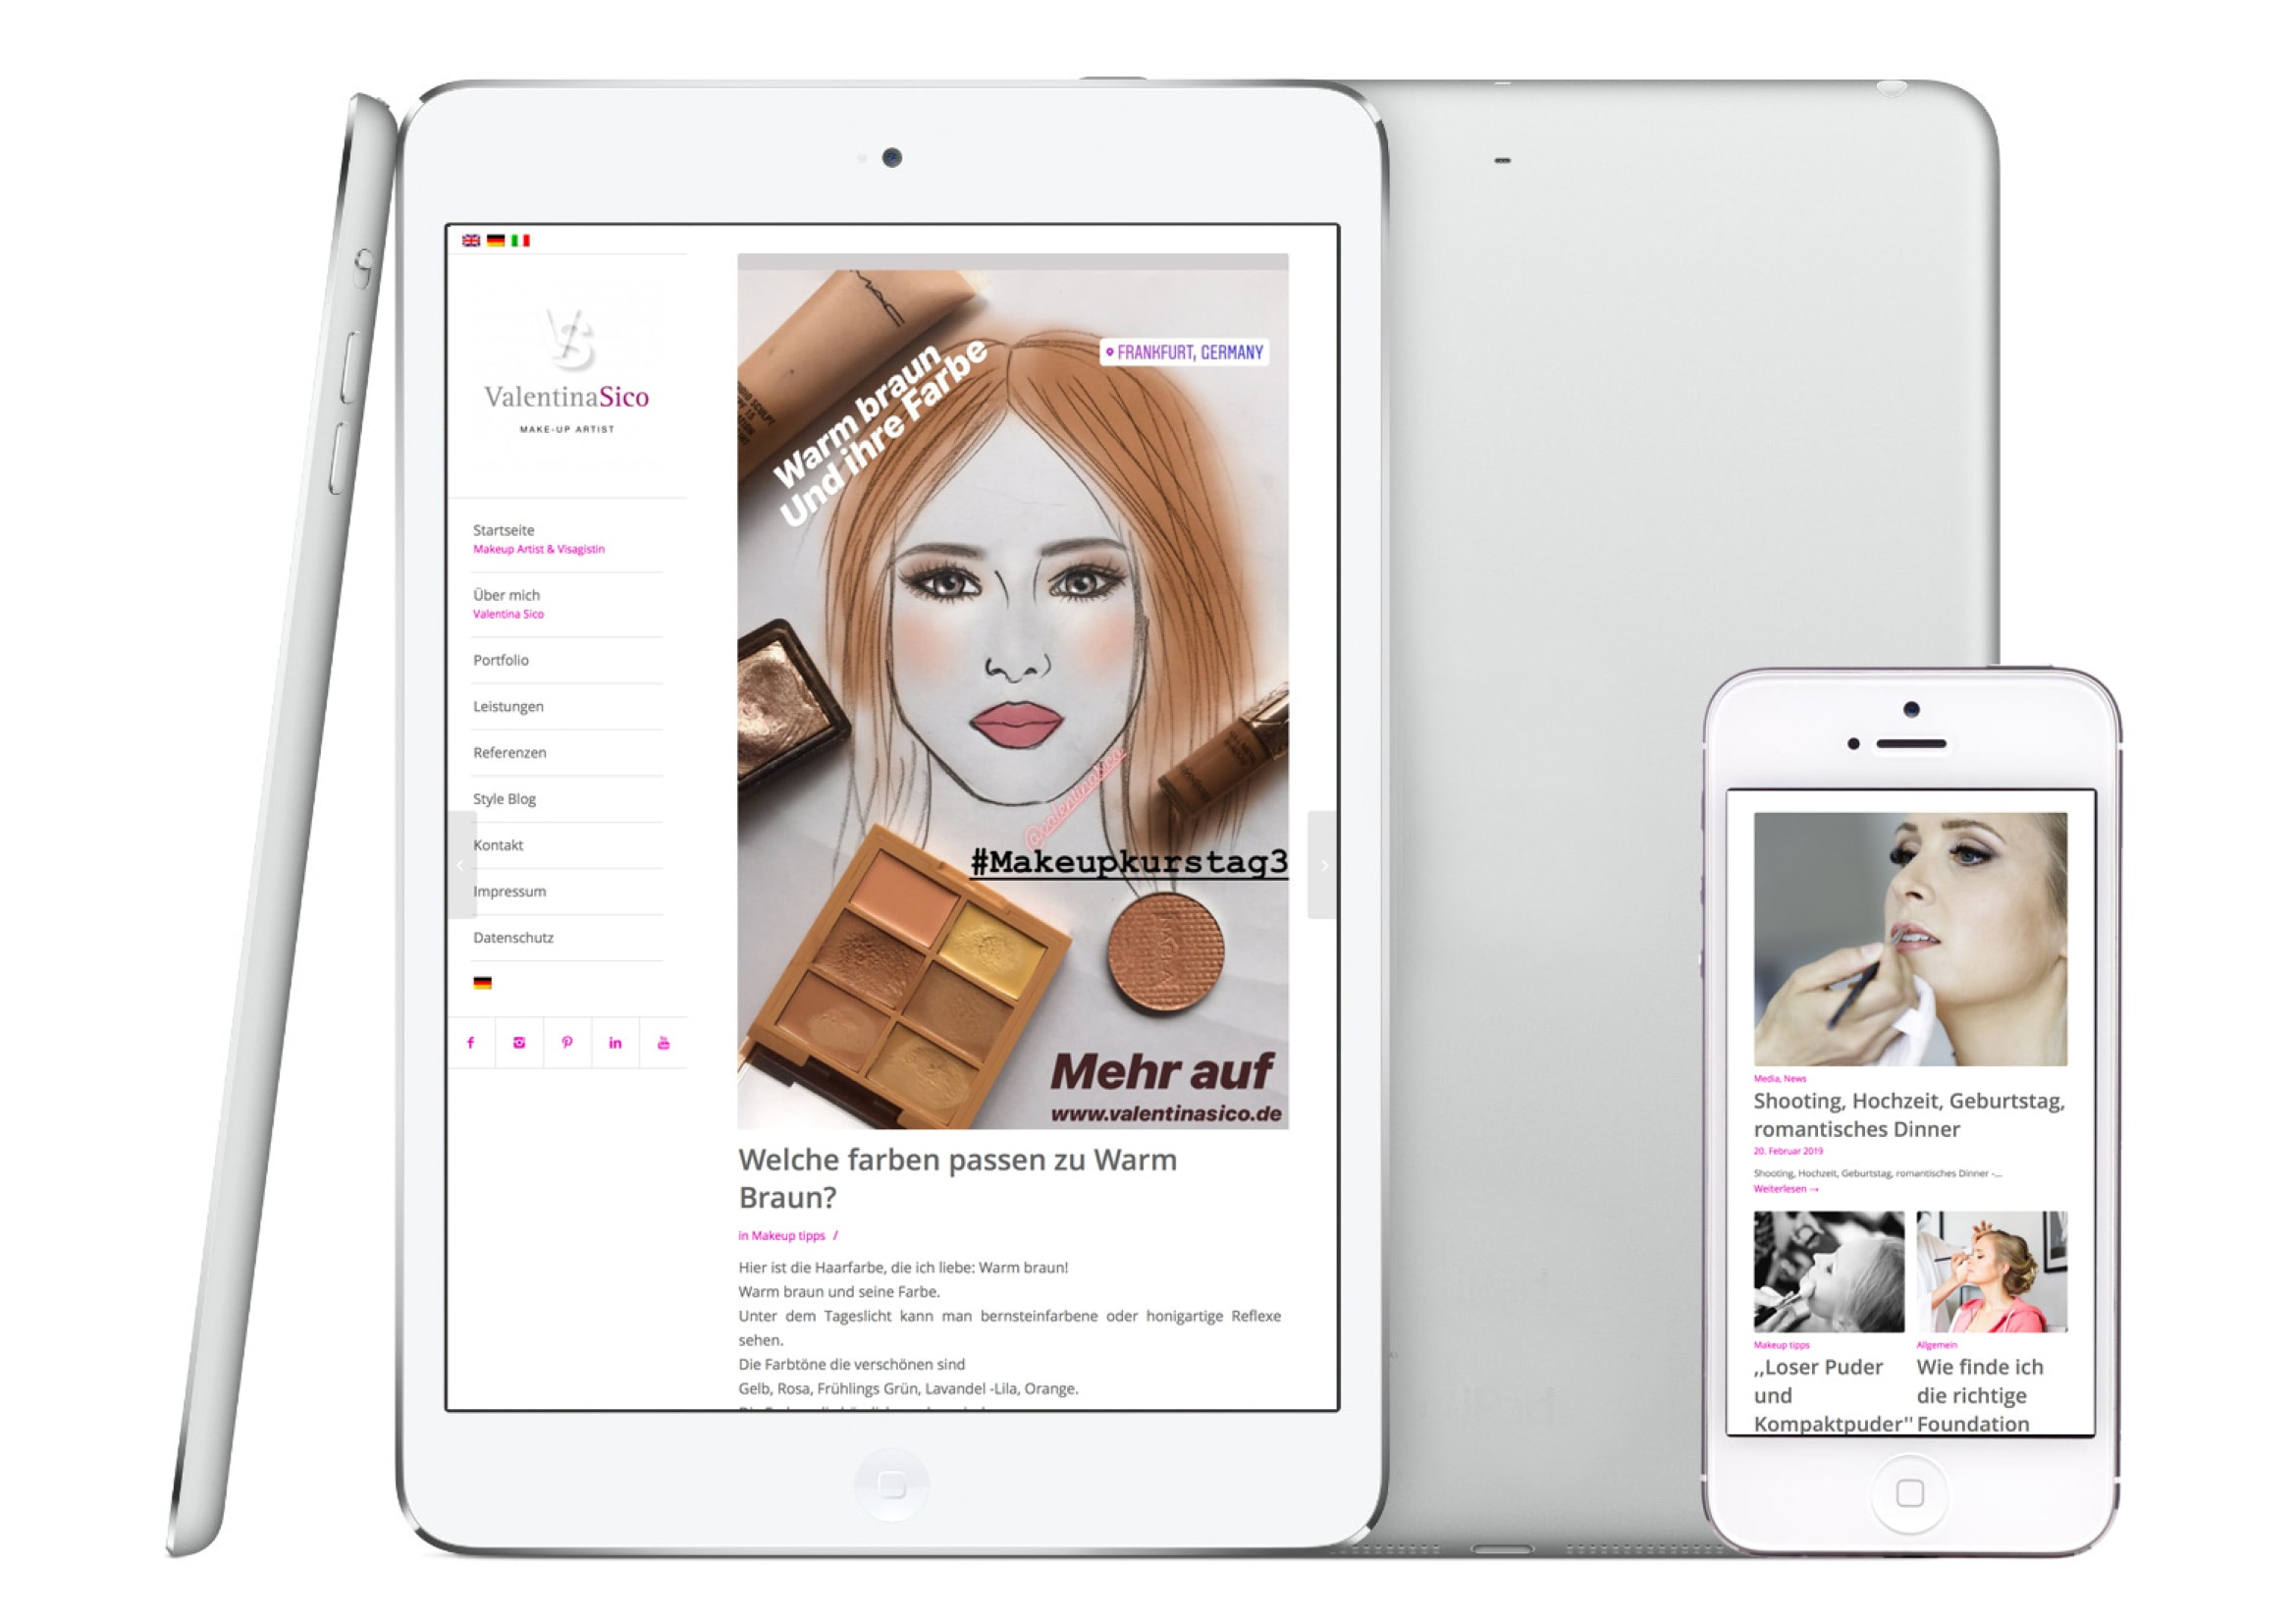 Webdesign Entwicklung Style Blog Visagistin, Make-up Artist und Hairstylistin